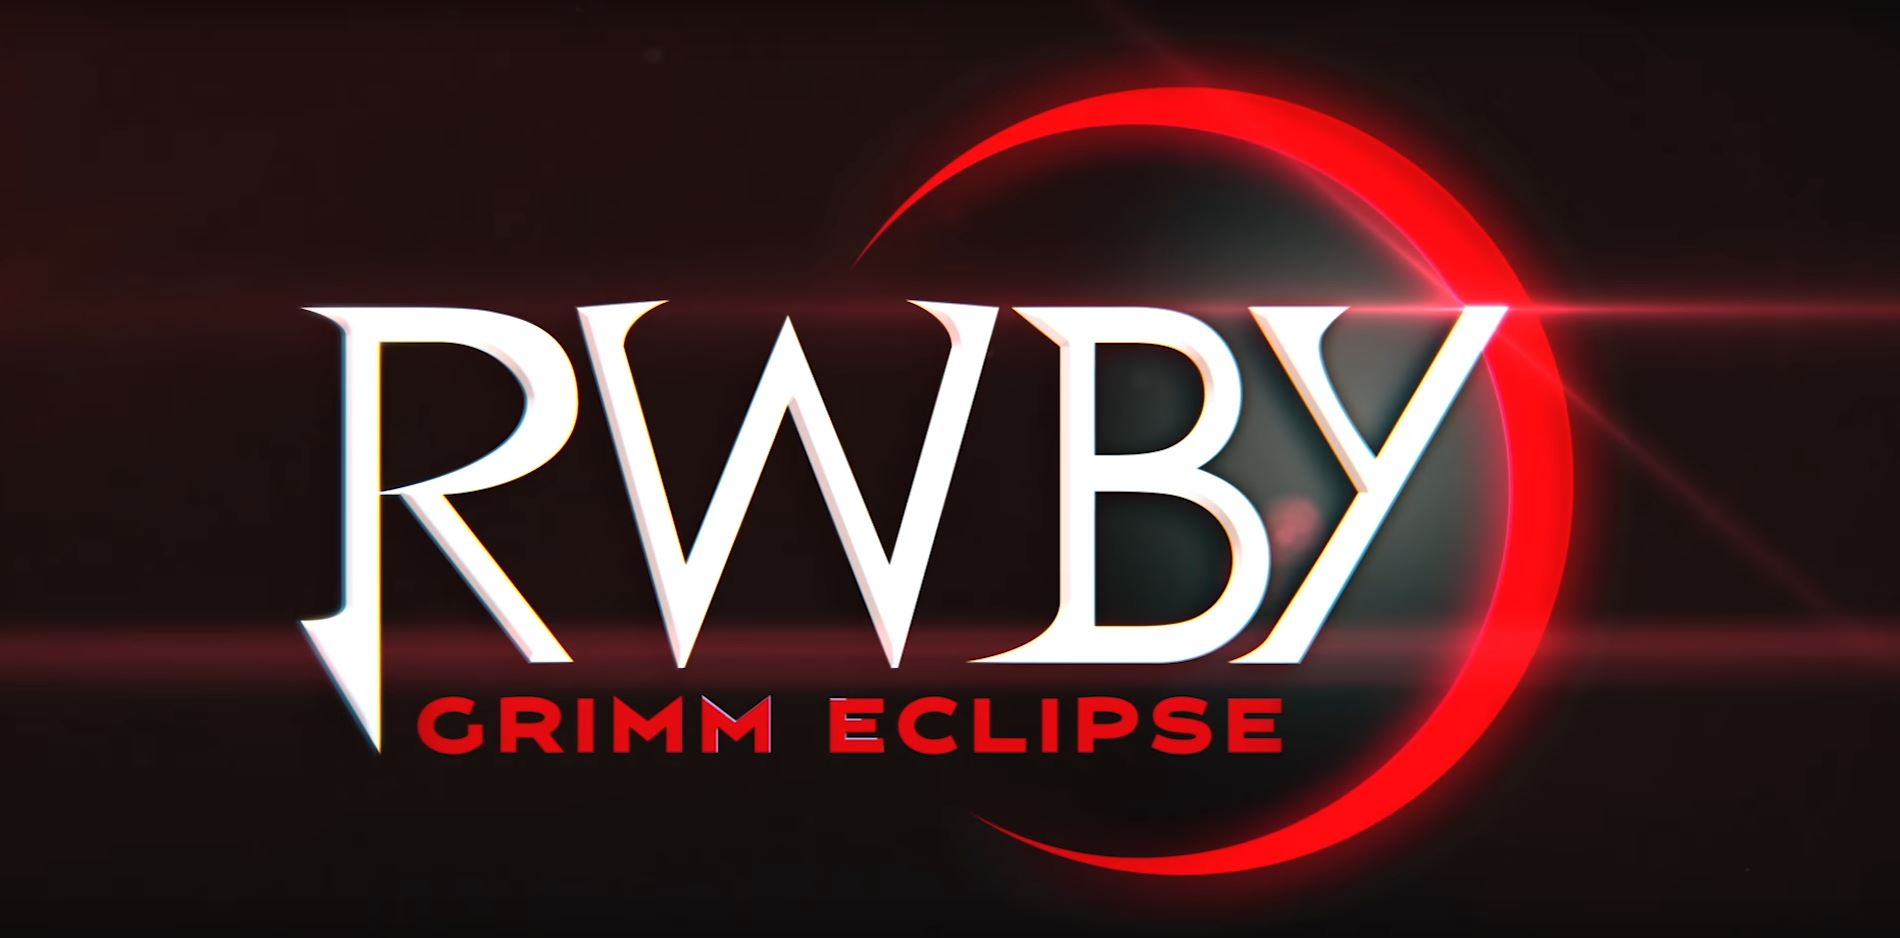 rwby grimm eclipse cover